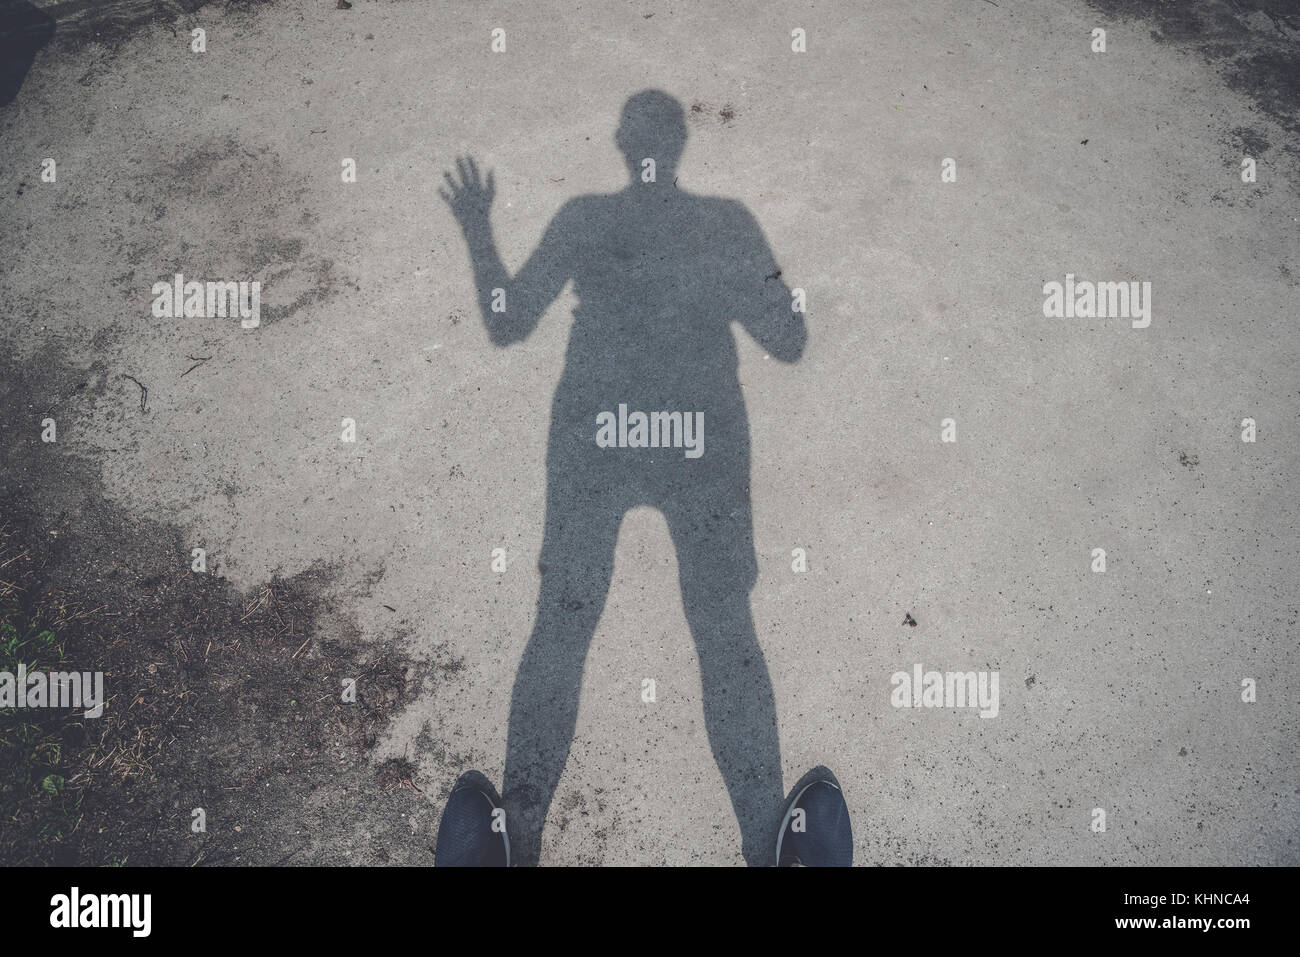 Male shadow on the ground waving hello with one hand - Stock Image